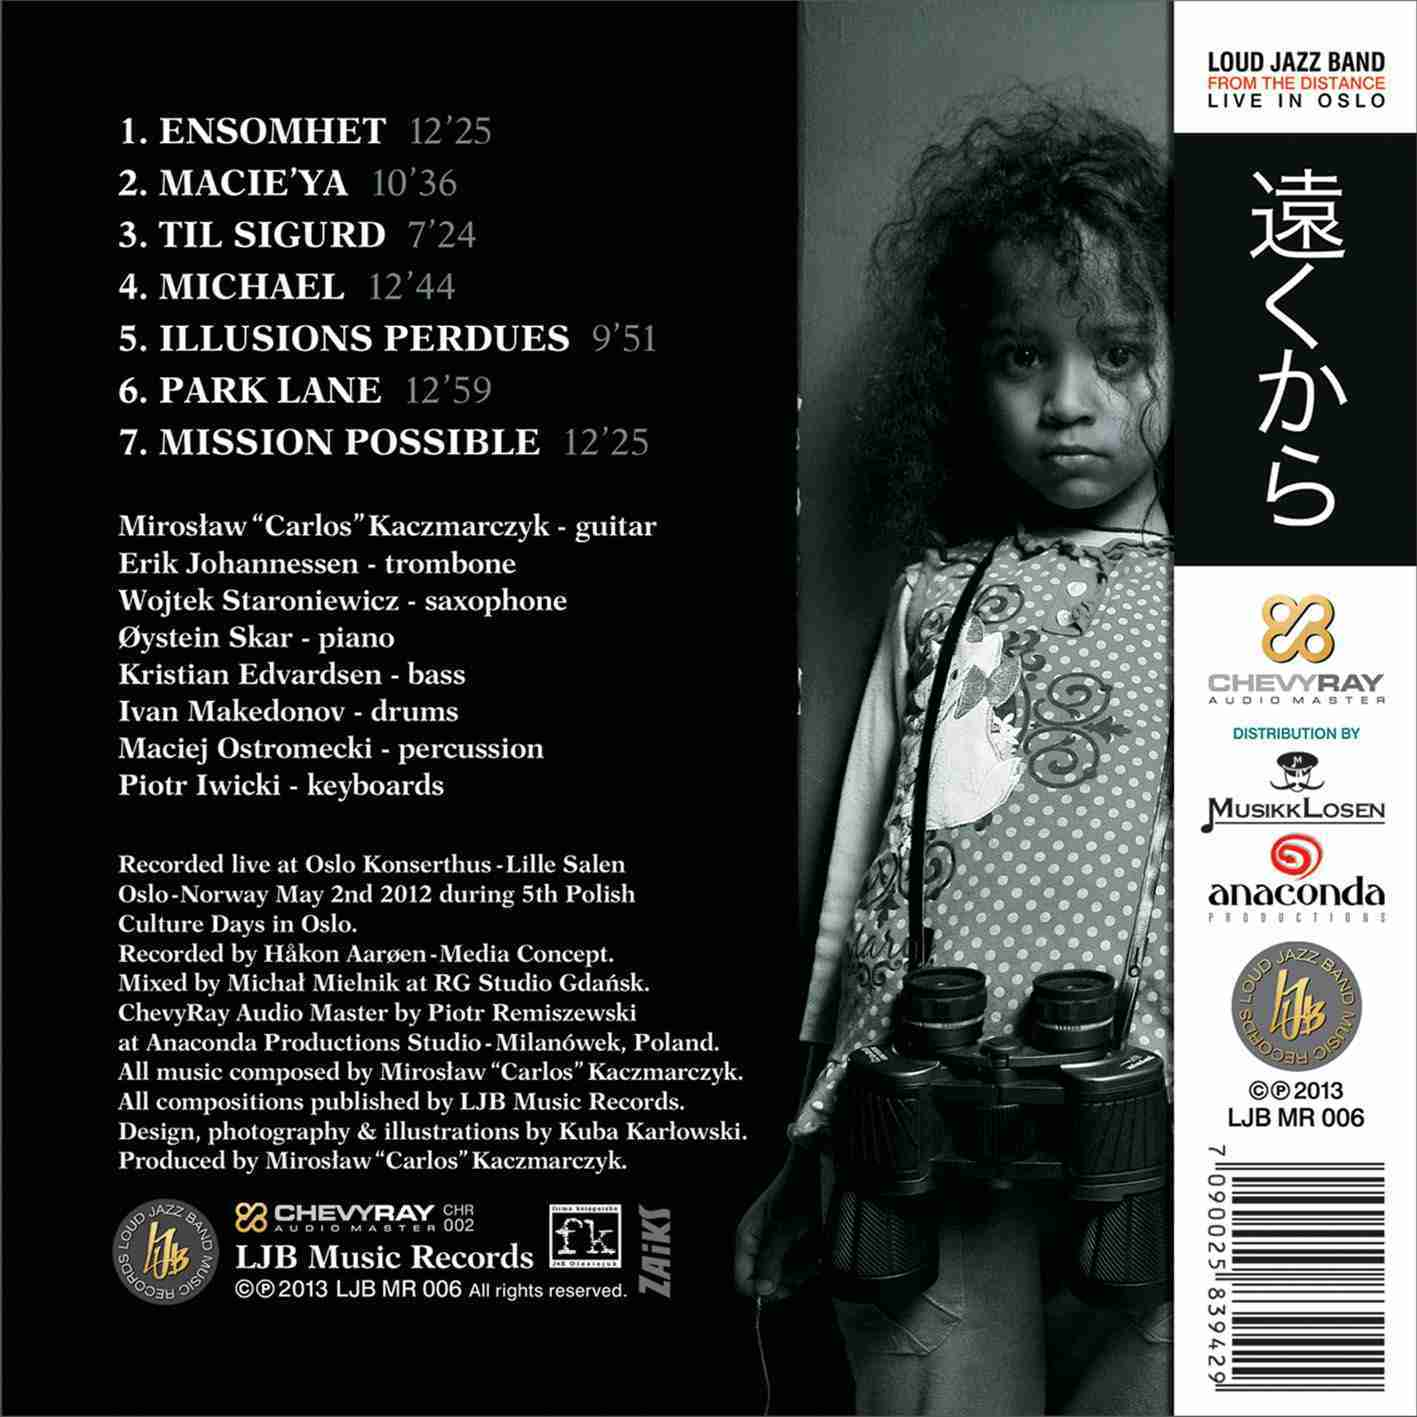 From the Distance - back cover